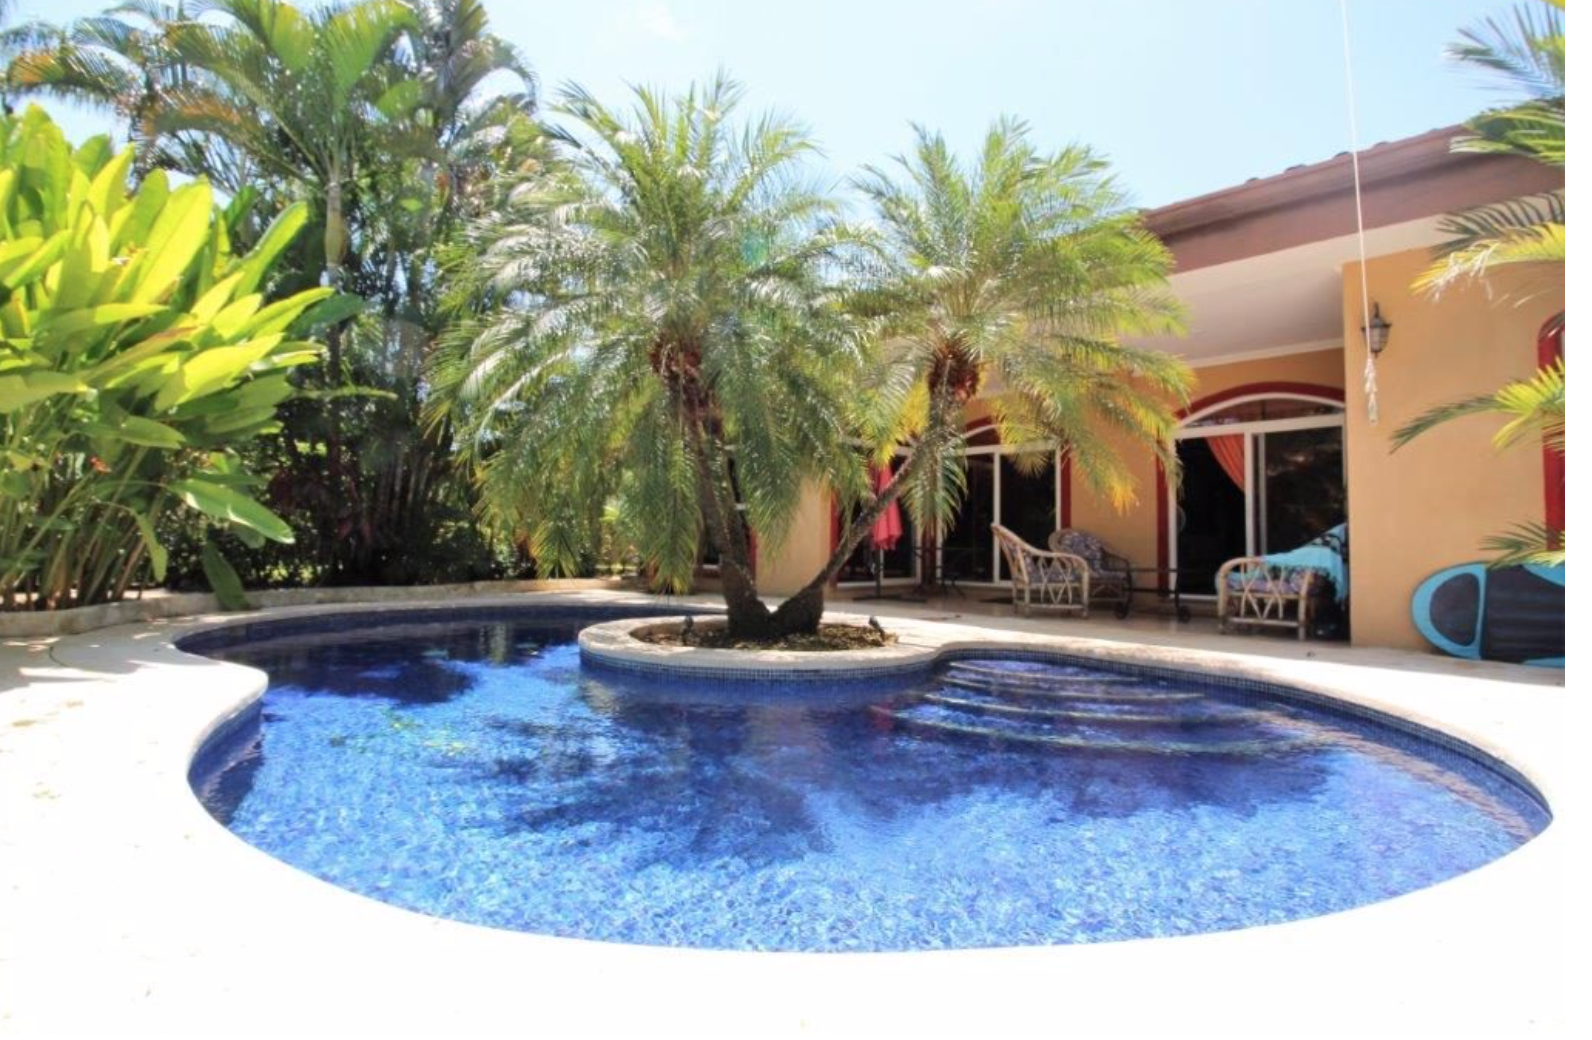 Costa del Sol* – Gated Community – 3 Bedroom 3 Bath Home with Private Pool